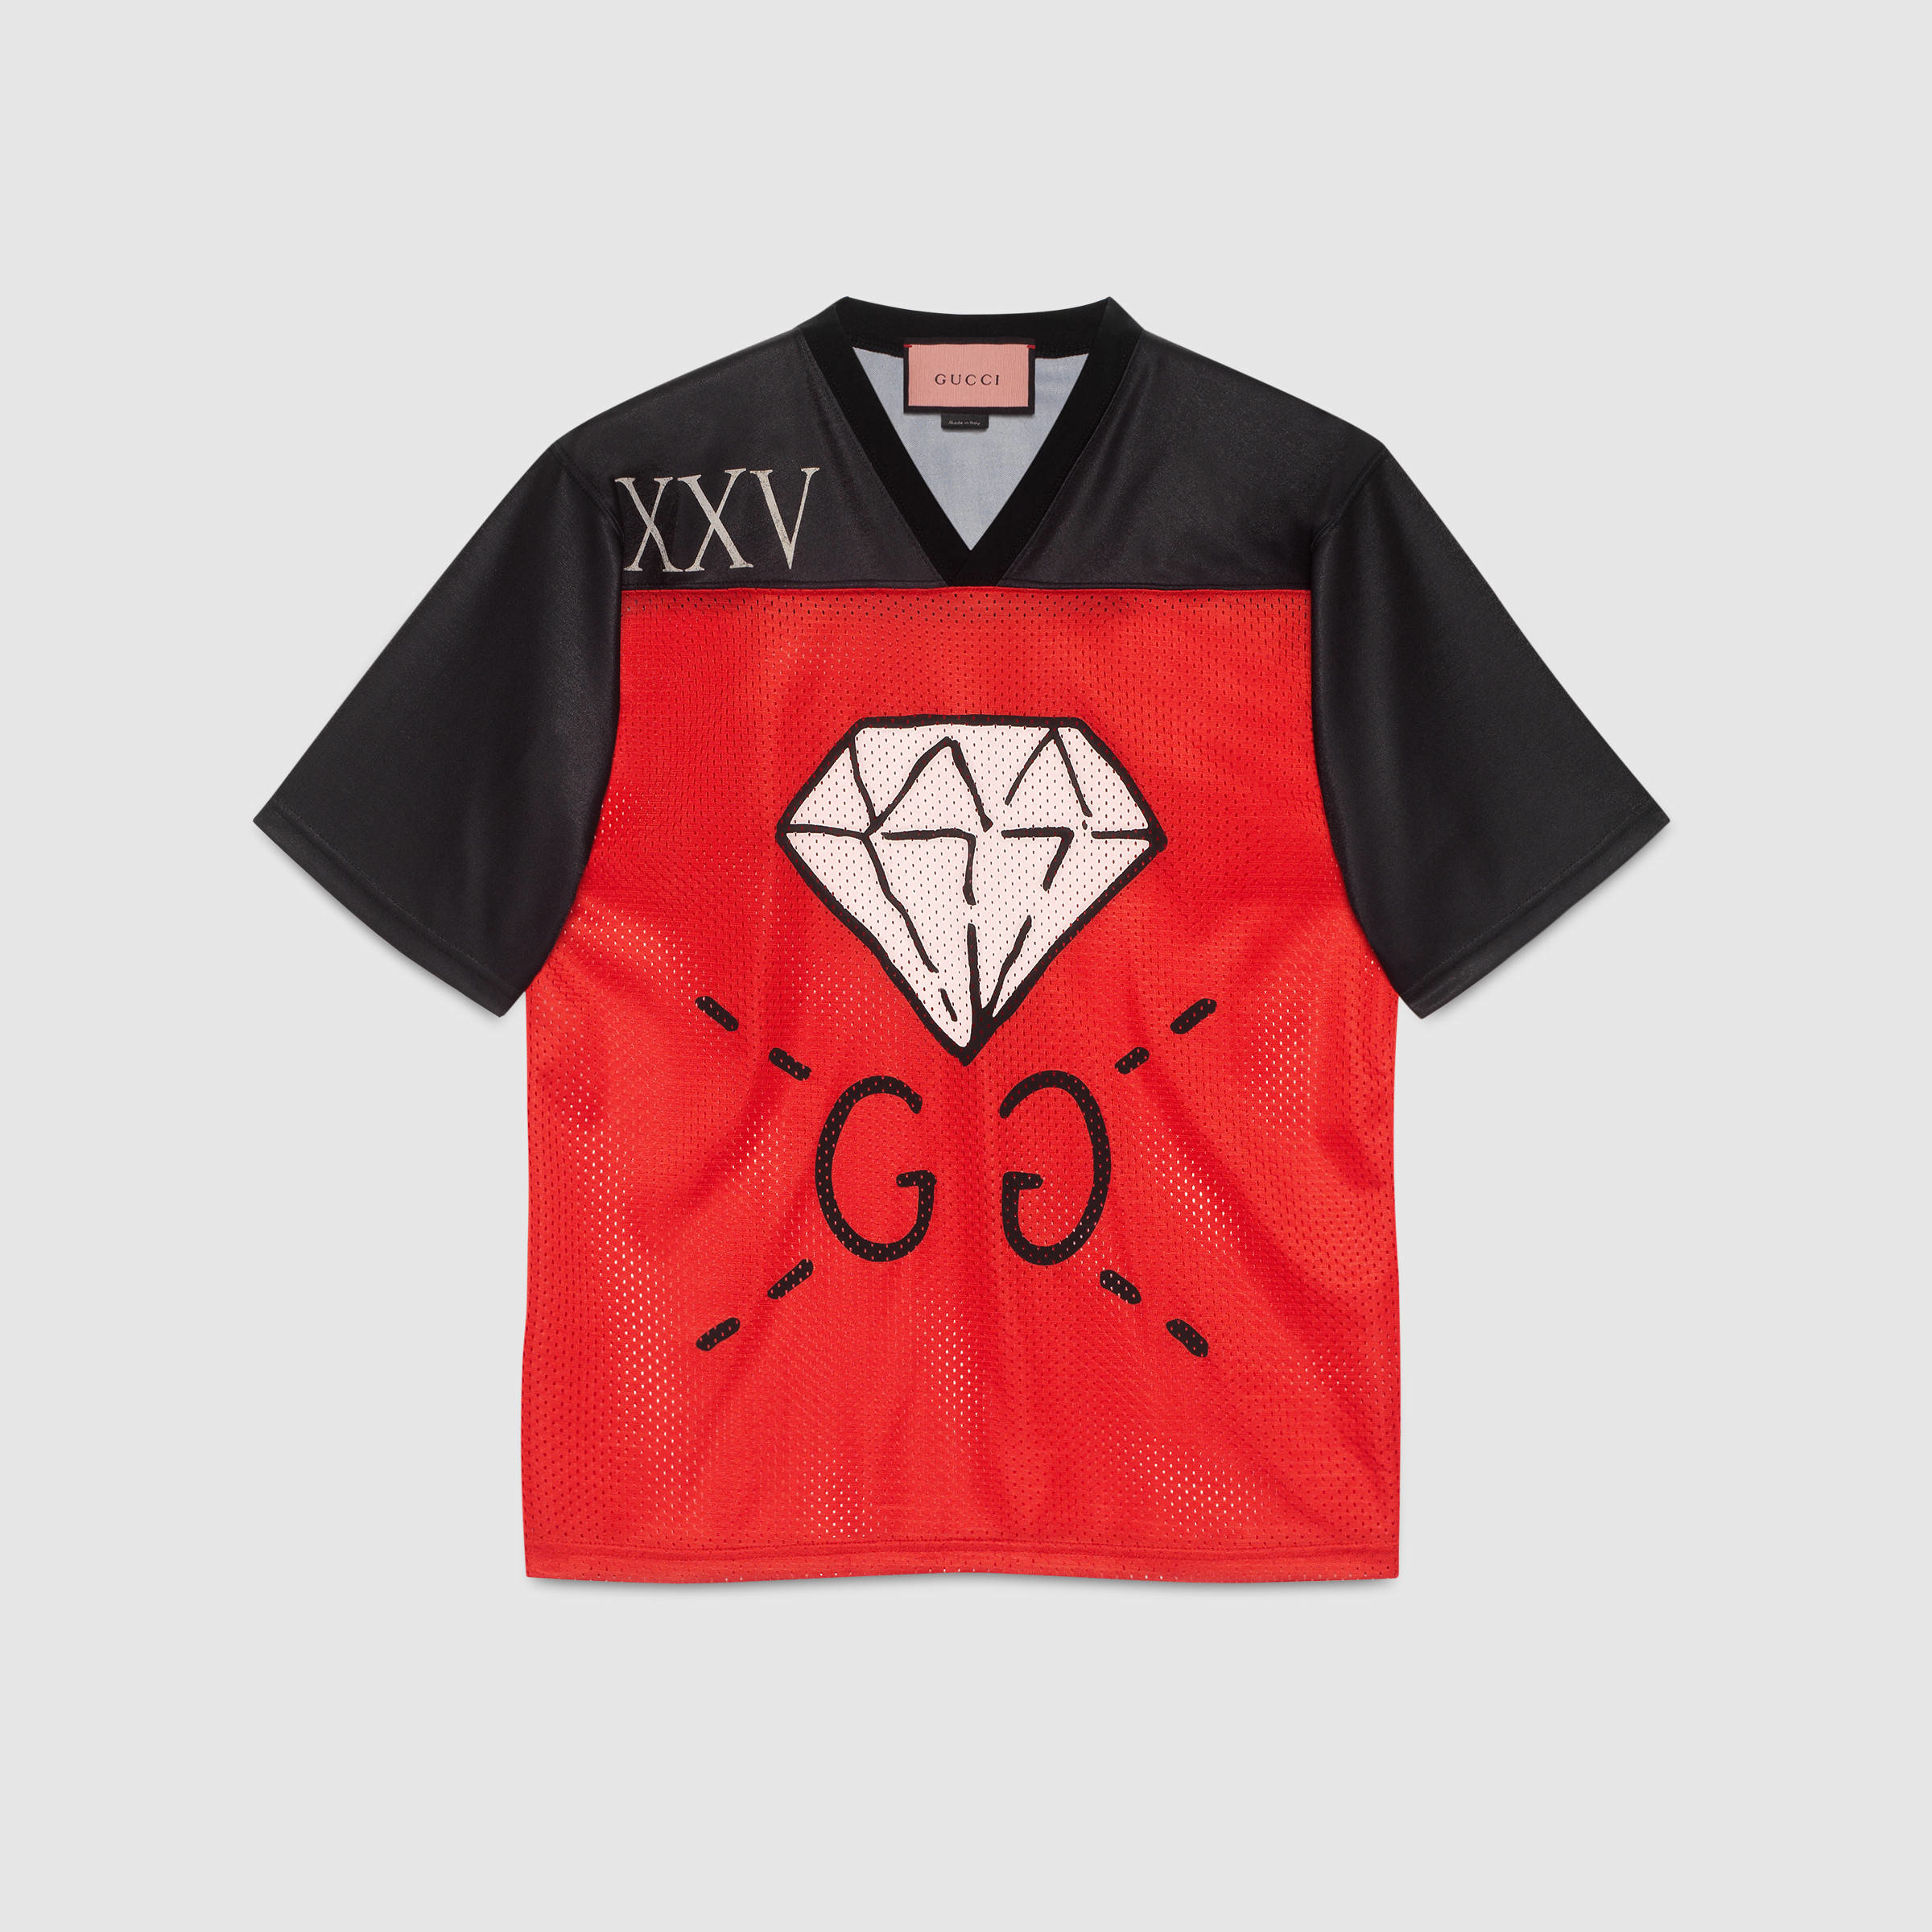 098a6b93f Lyst - Gucci Ghost T-shirt in Red for Men